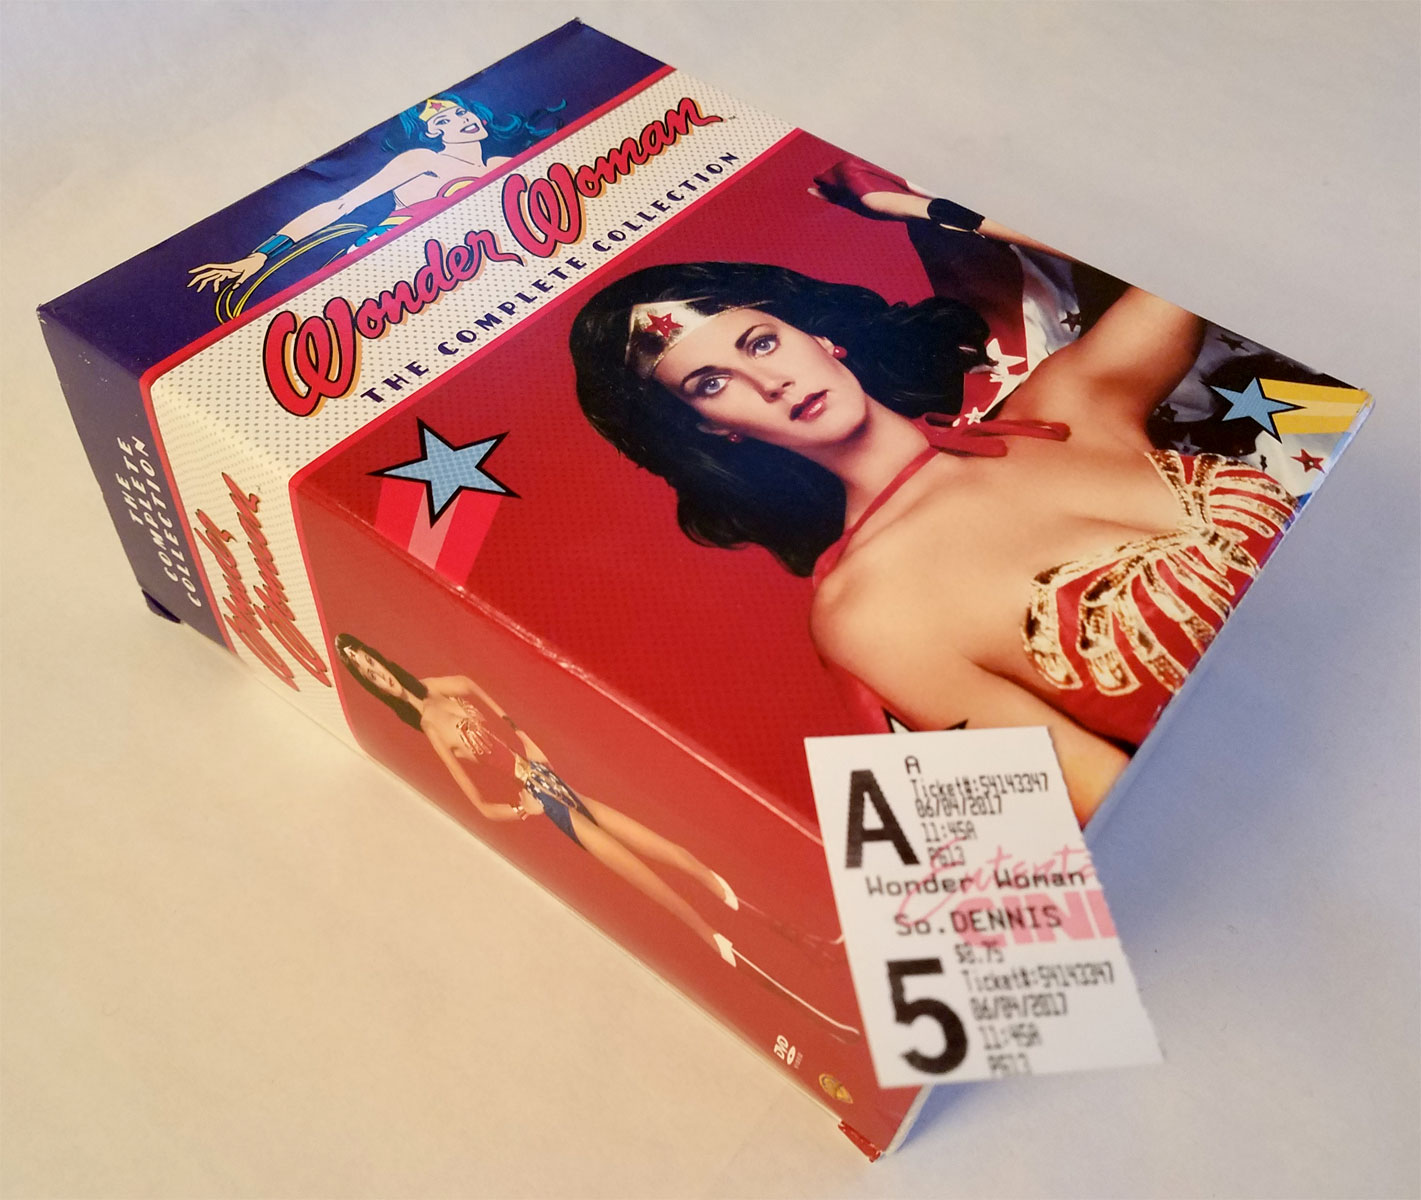 Wonder Woman Collection on DVD